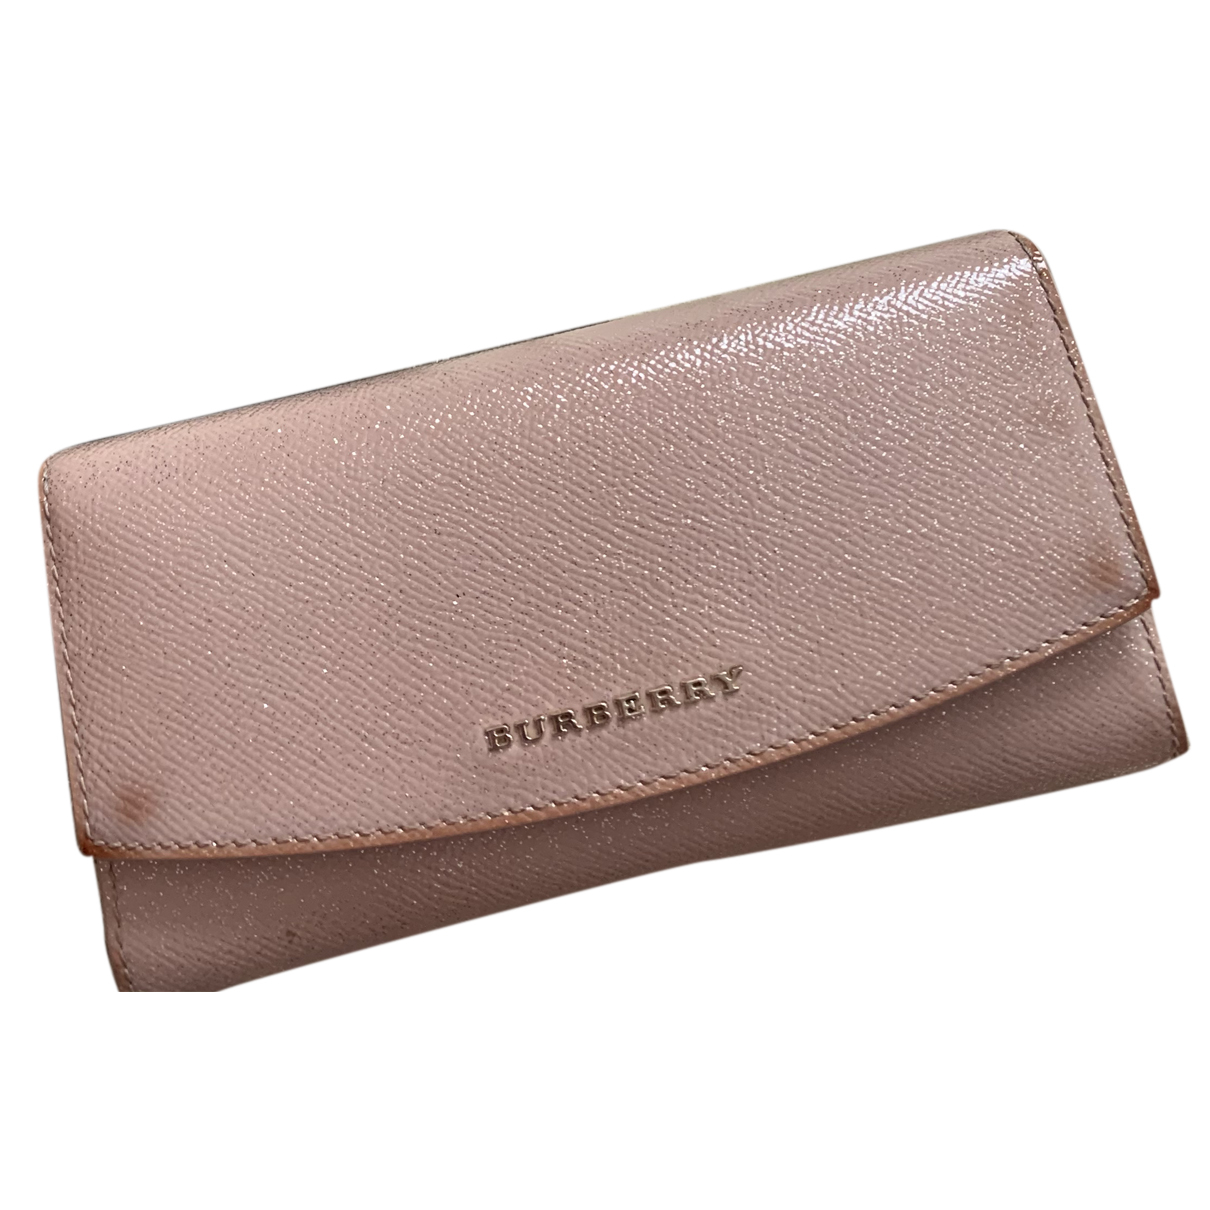 Burberry N Pink Leather wallet for Women N